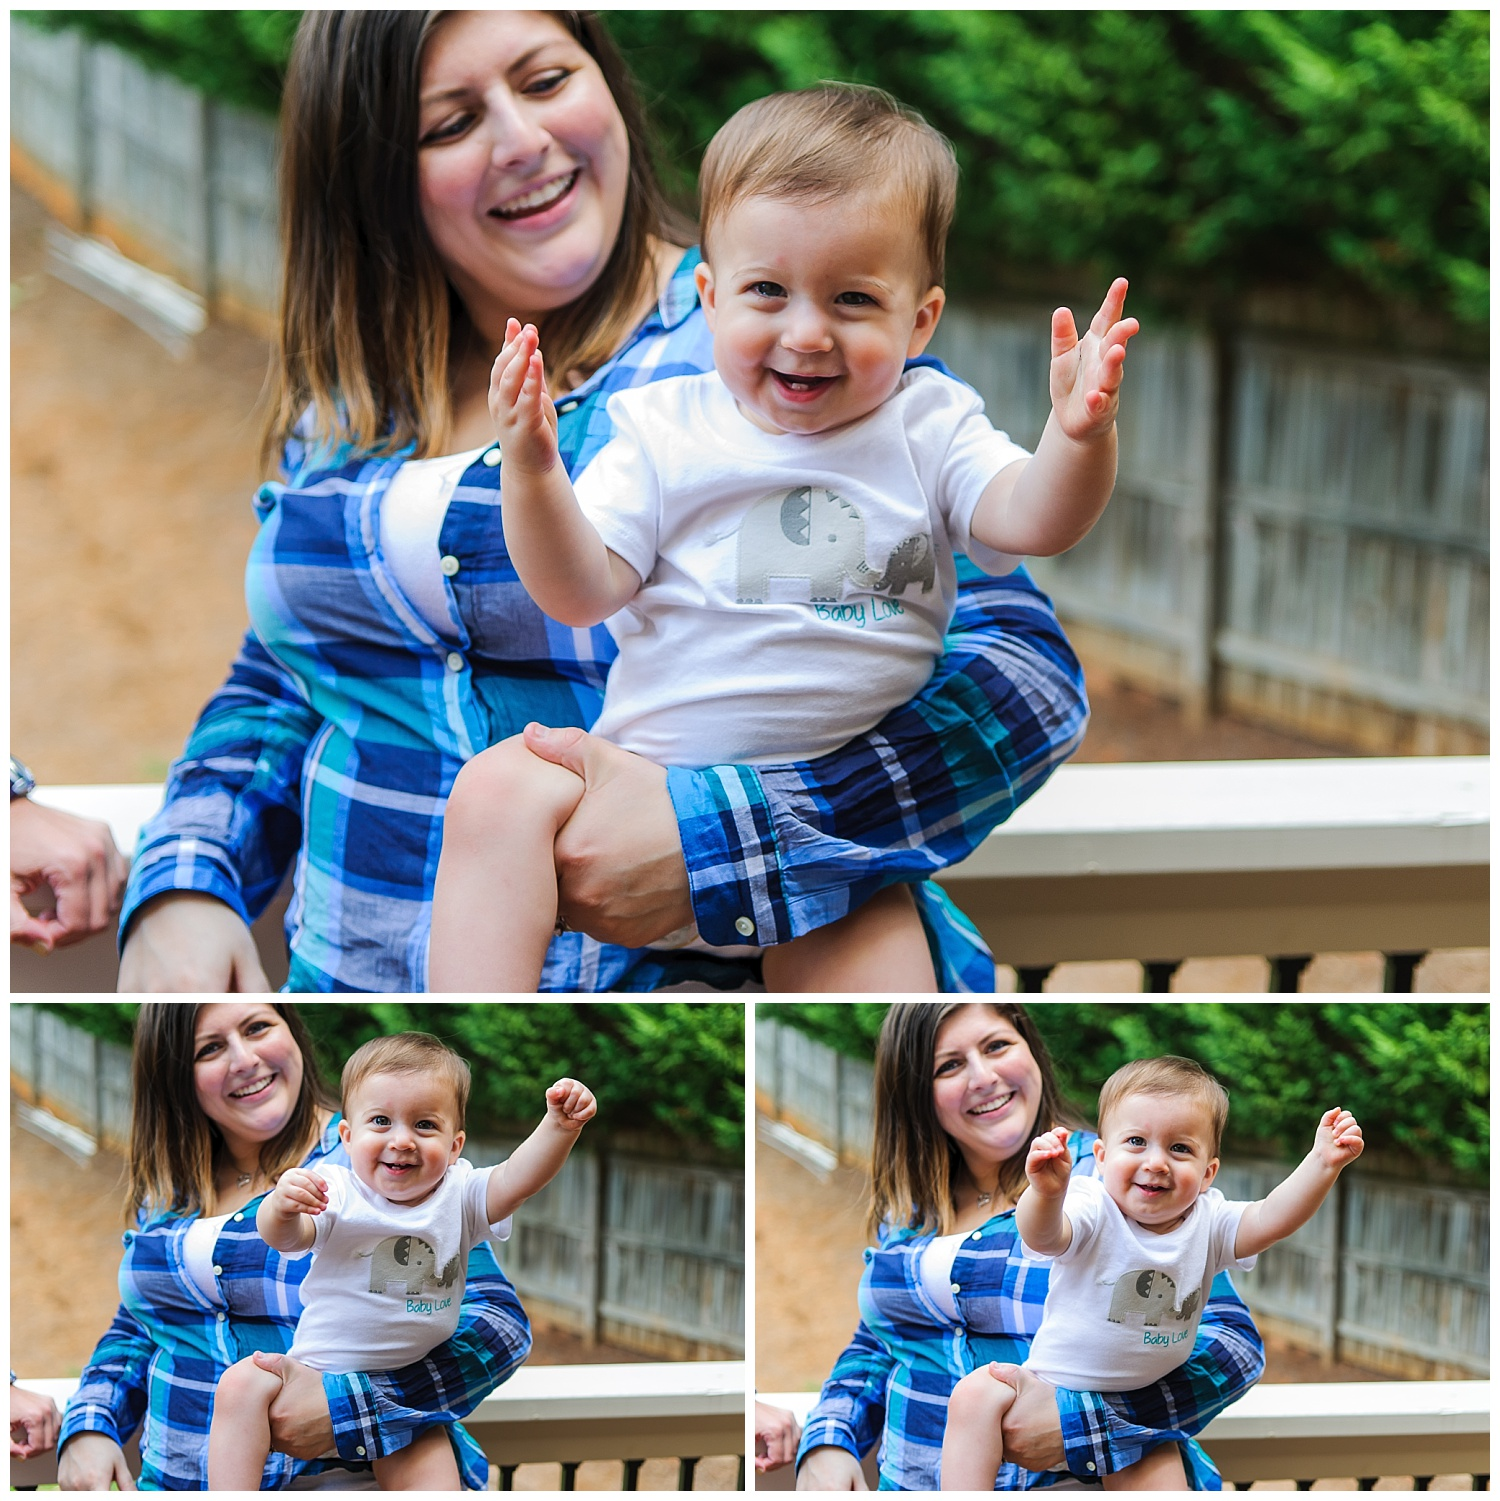 these are images of mom and the child on the balcony singing songs and the child waving his arms in the air and smiling.